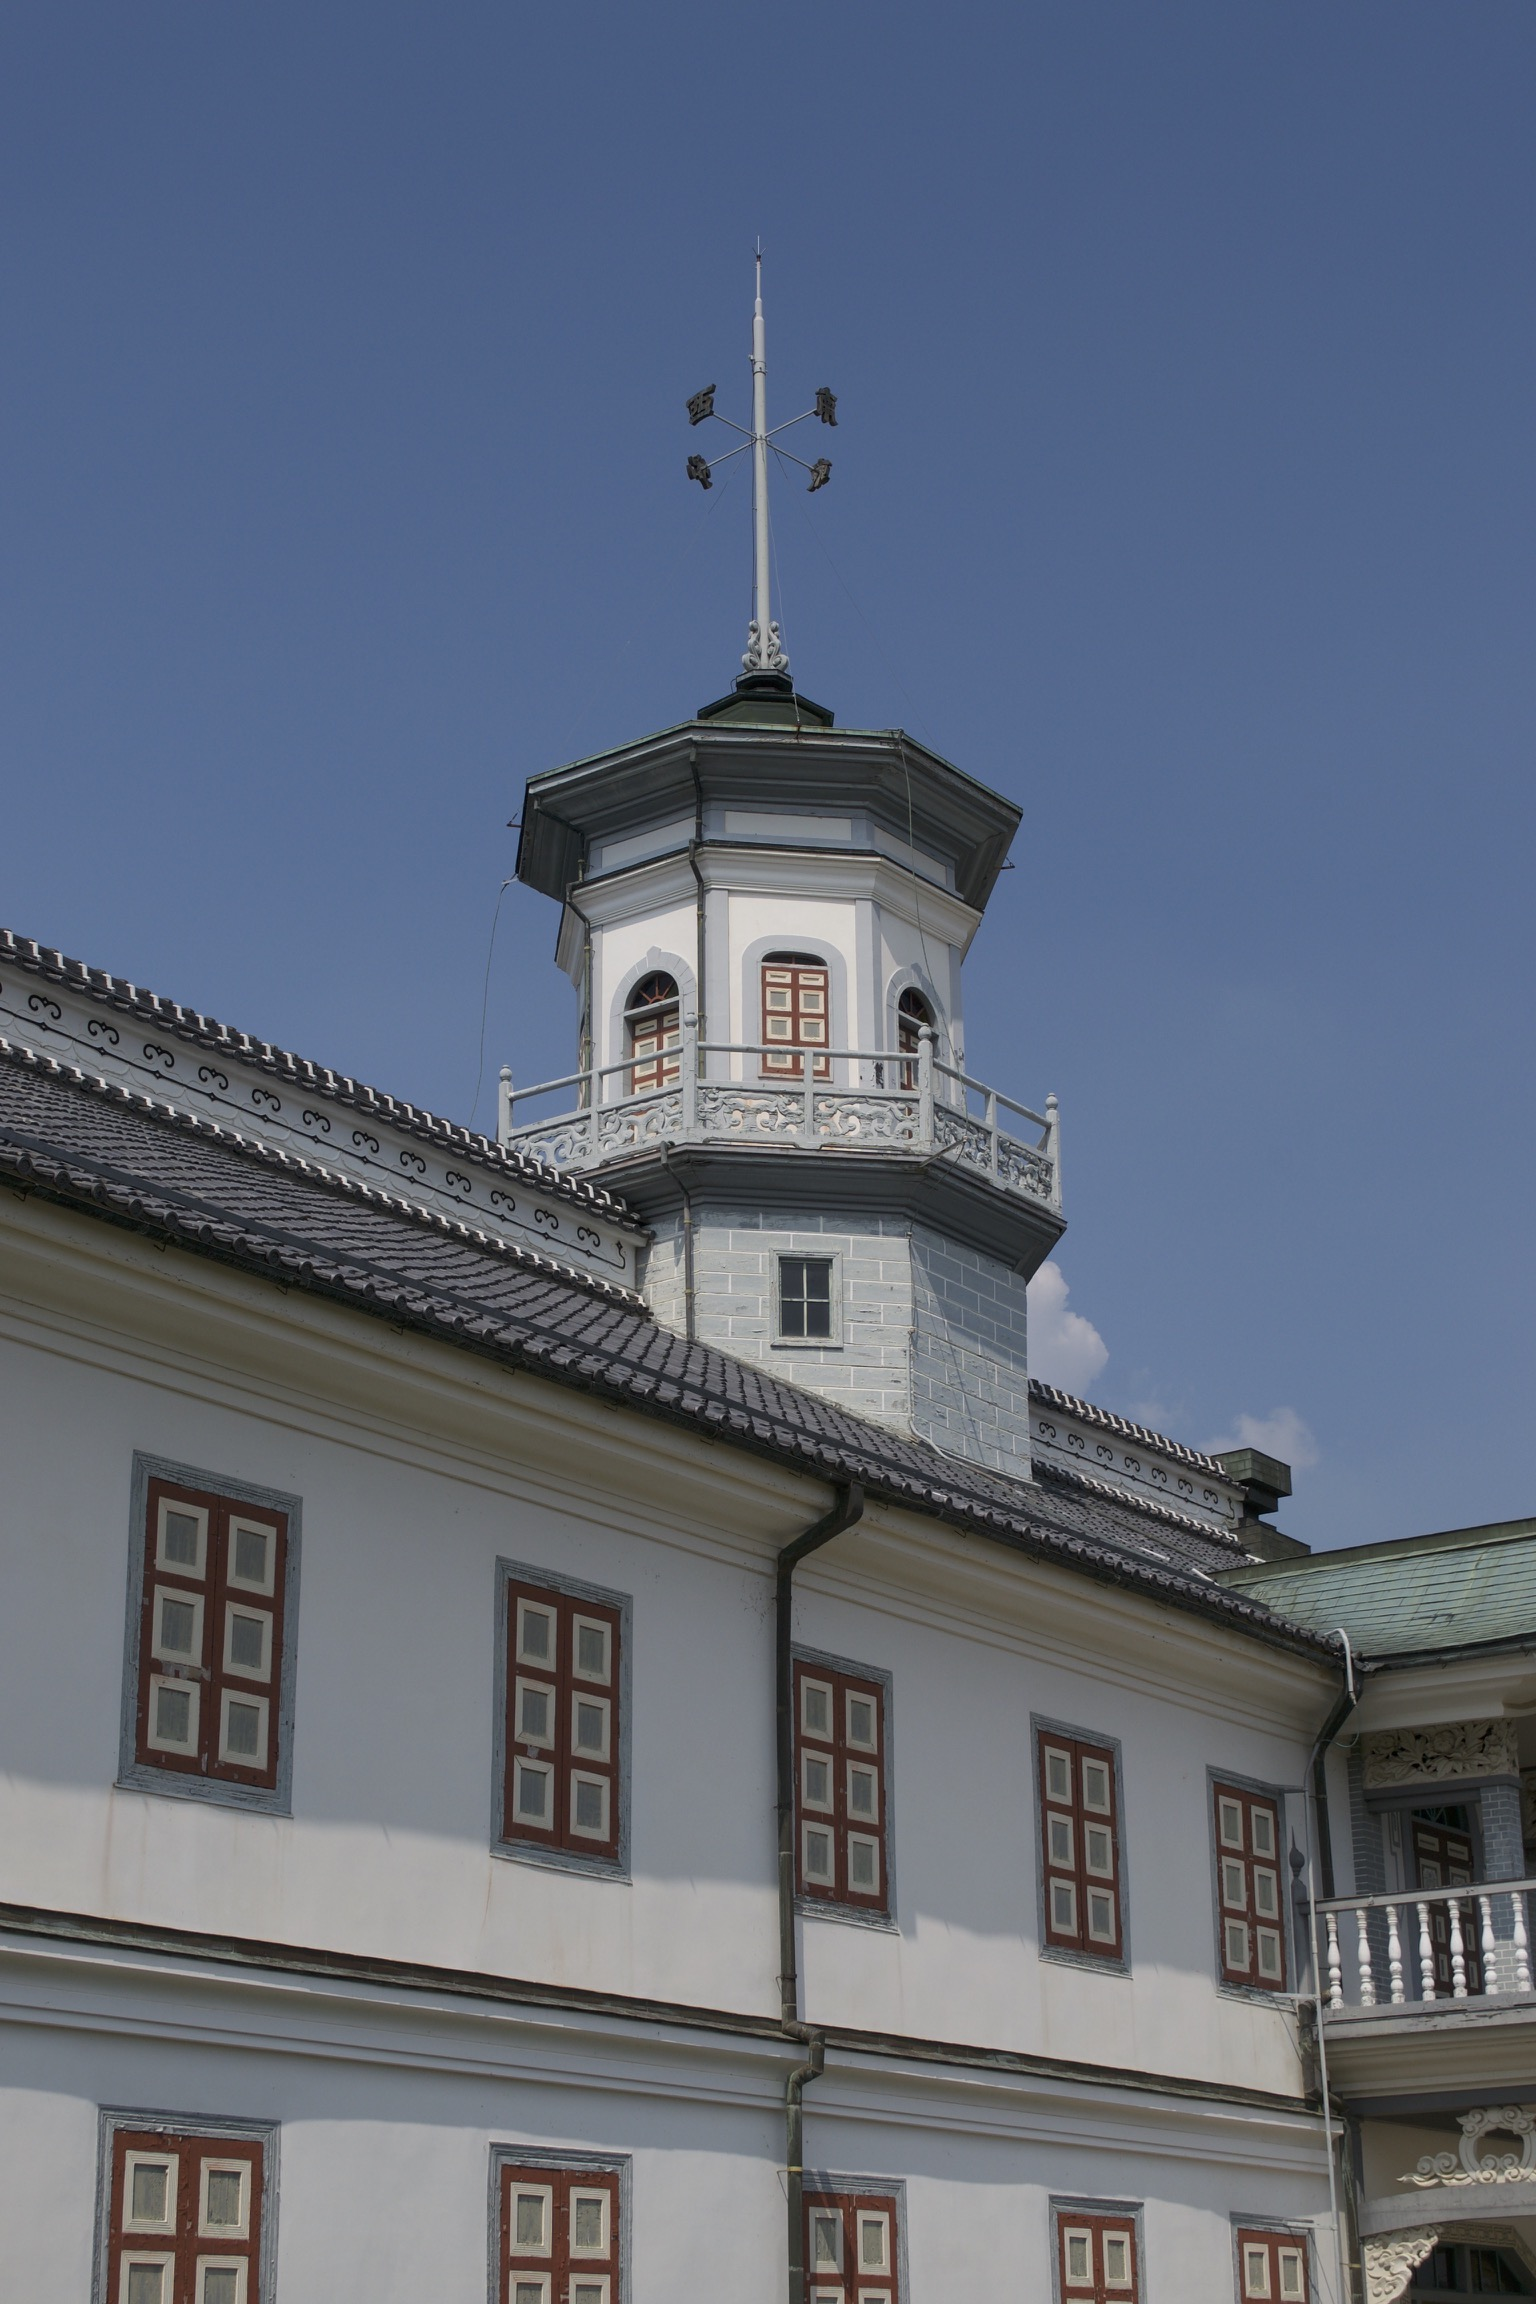 An octagonal tower atop a low, wide western-style building with Japanese elements.